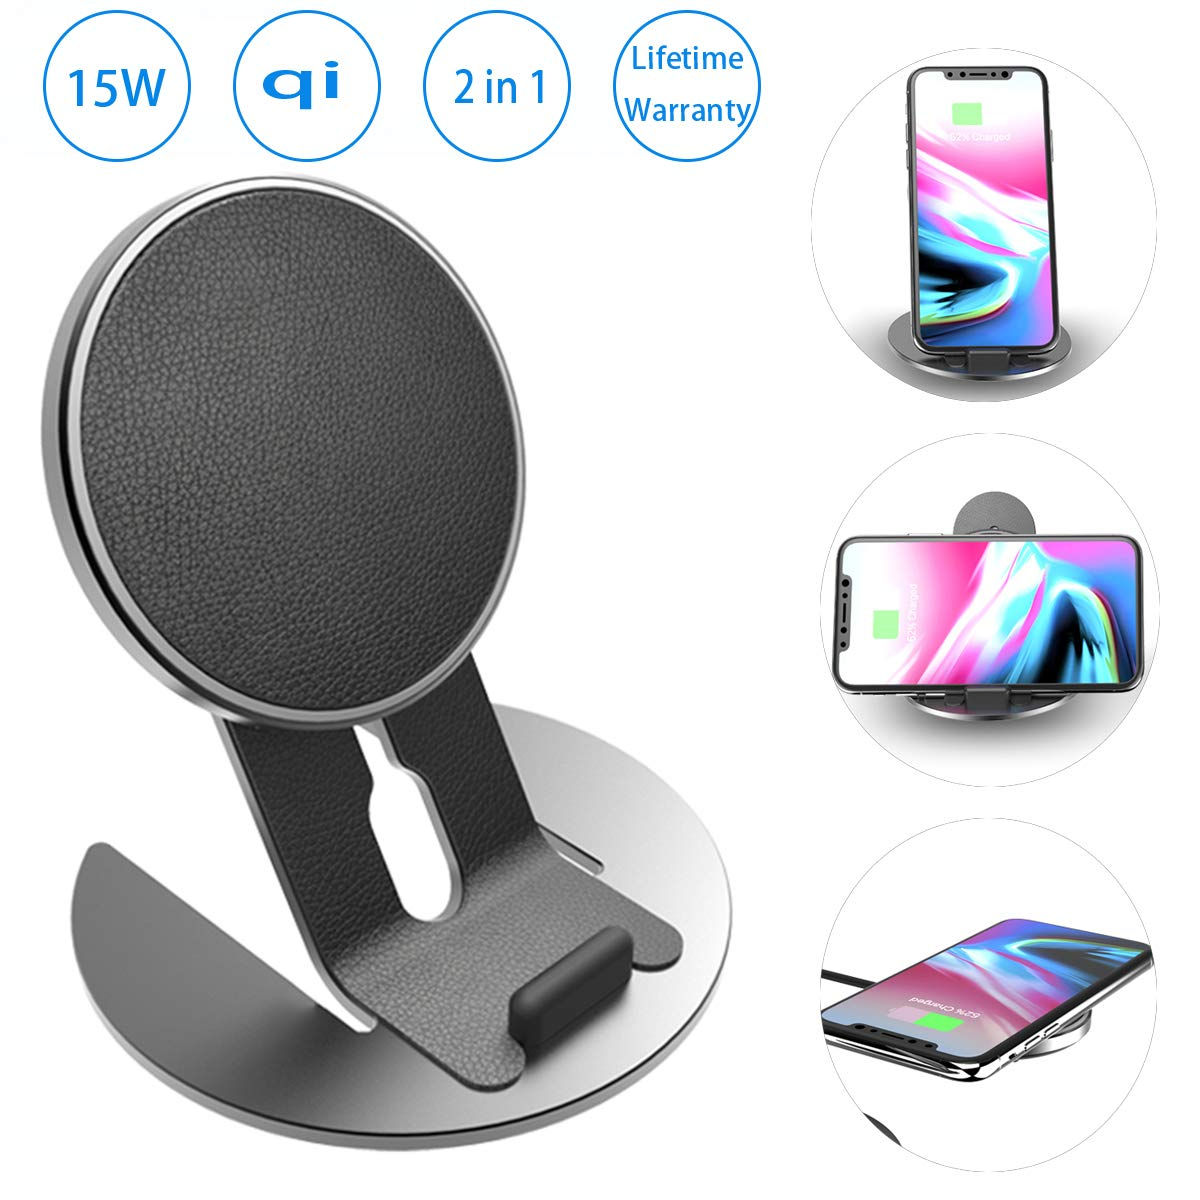 15w Qi Wireless Charging Pad,[15w Fast Charging][2 in 1 Detachable Wireless Charging Stand] Wireless Charger Fits for iPhone X/XR/XS Max/Samsung Galaxy S10+Plus/S10 5G/S9,Qi-Enabled Phone(No Adapter)